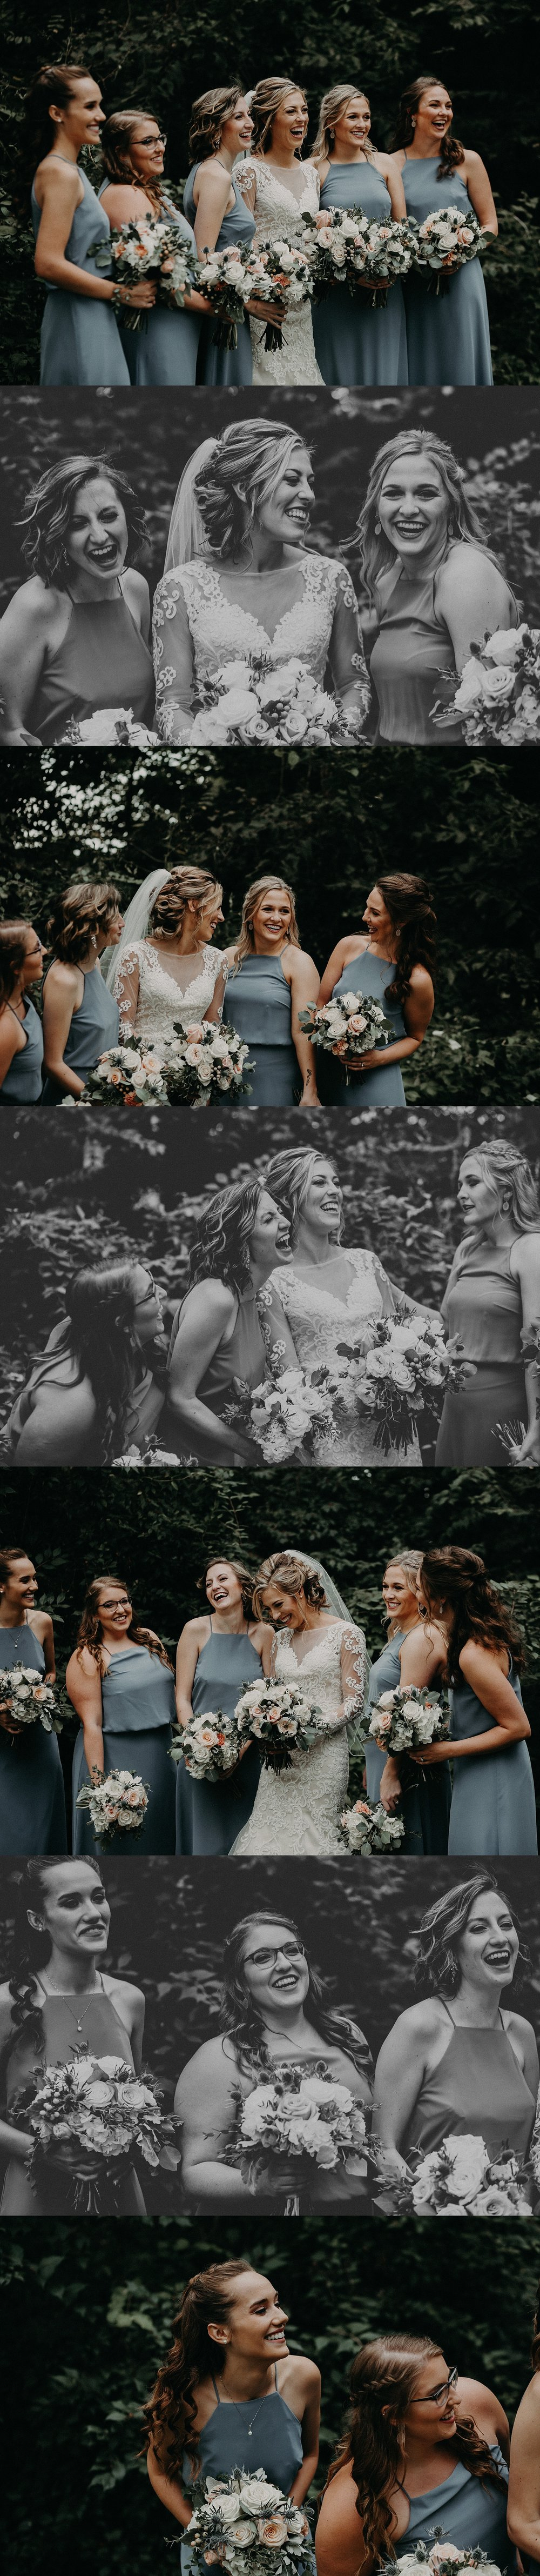 Joyful Bridal Party making jokes and laughing on wedding day in Lancaster, PA